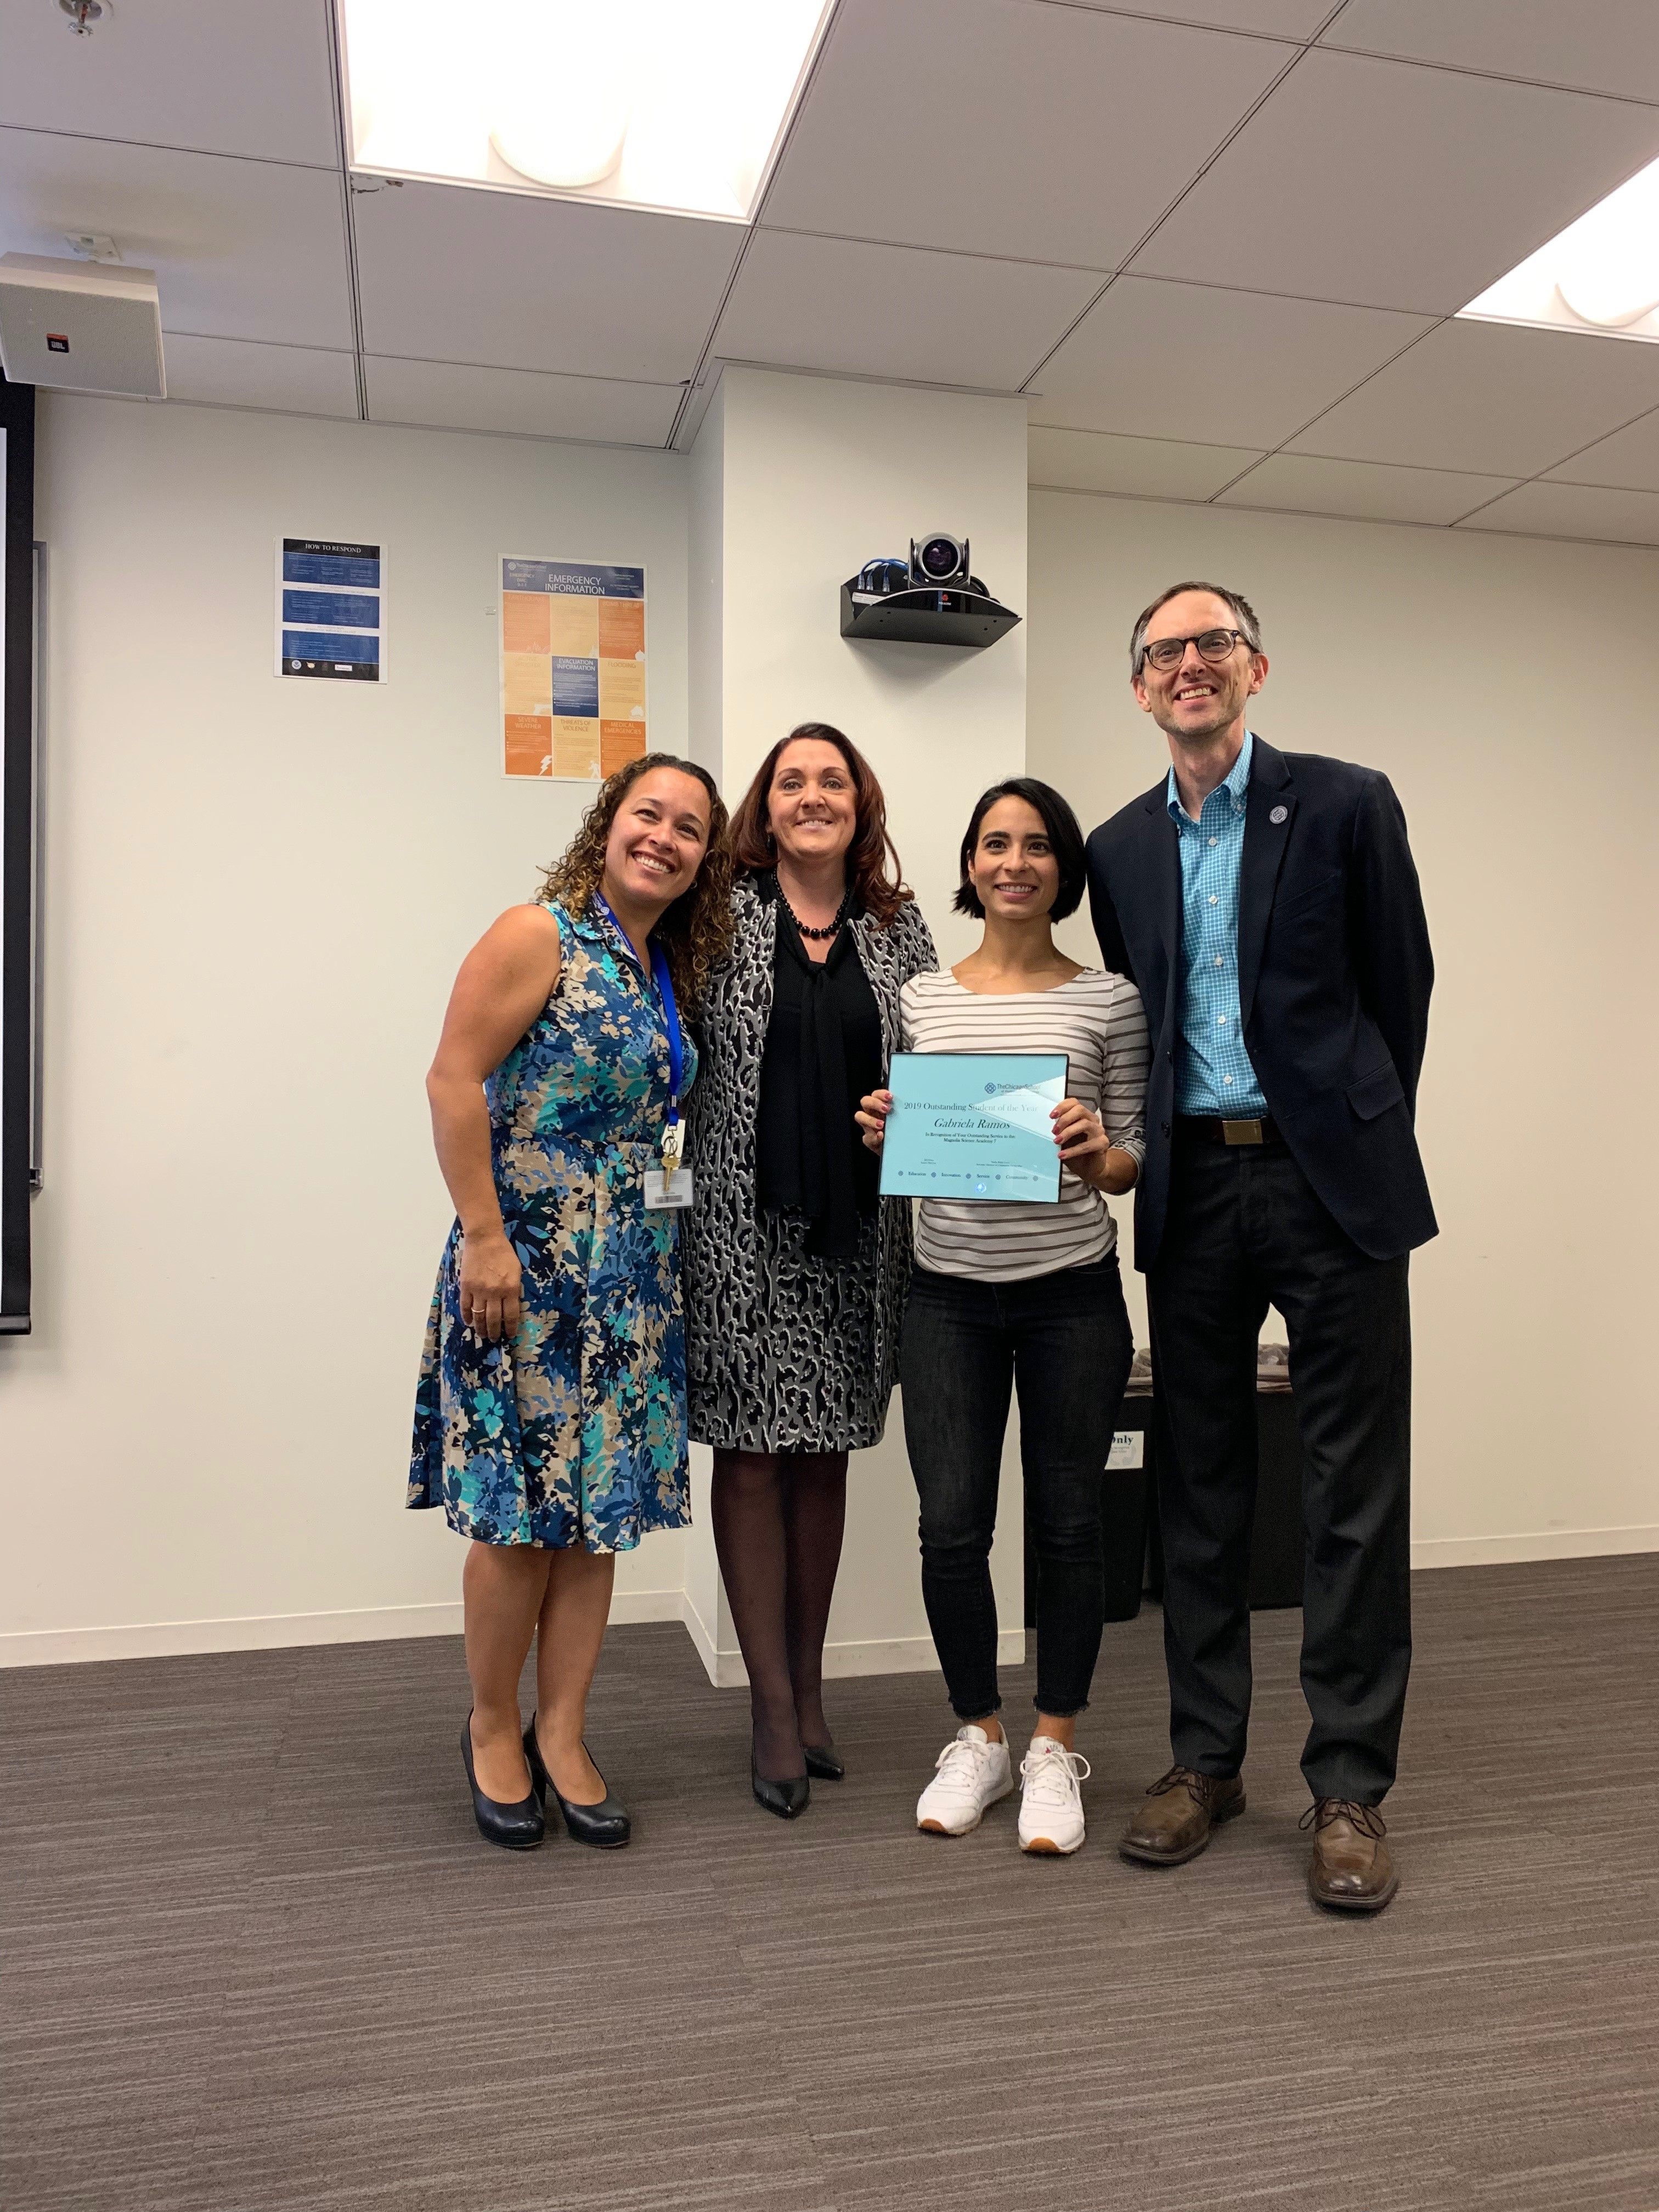 - Outstanding Student L.A. 2019 - Gabriela Ramos - serving at Magnolia School